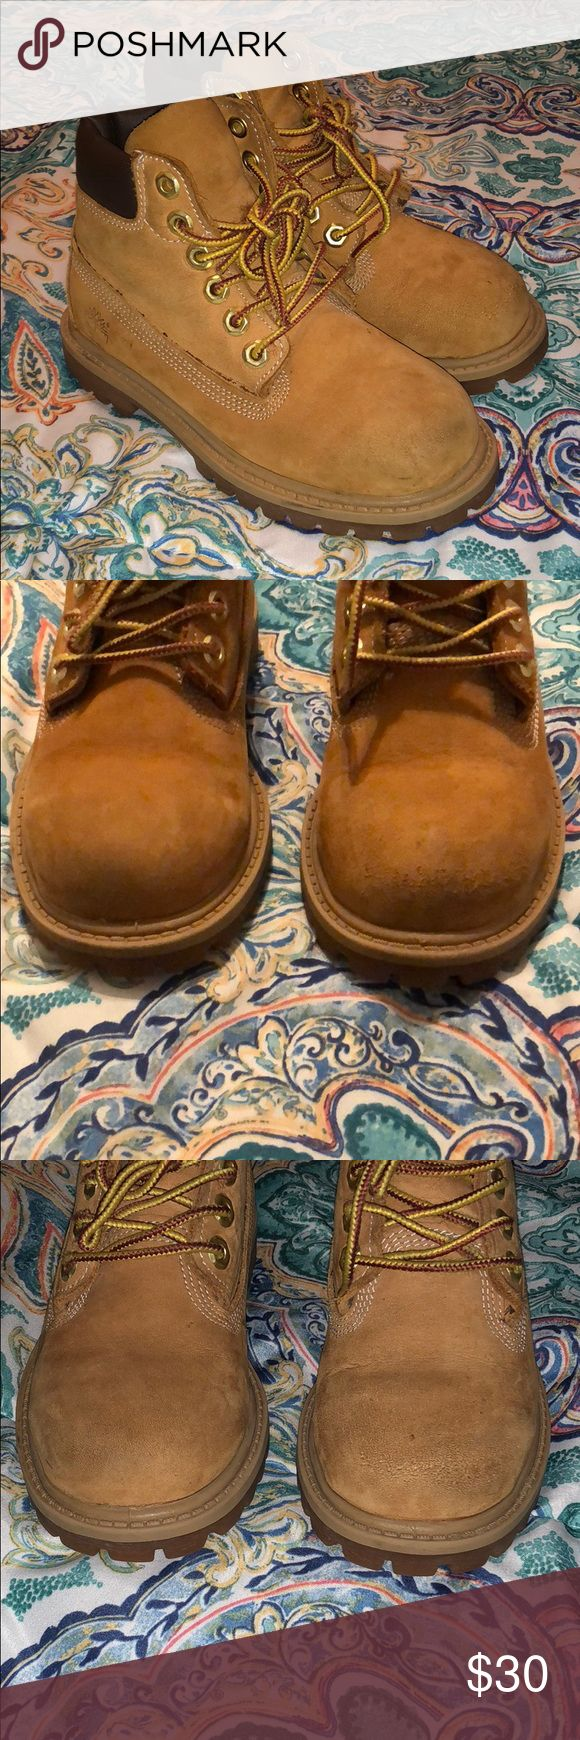 Toddler Boys Timberland Boots Size 10 Timberland Boots Boys Toddler size A few scuffs that can be brushed out. Overall in good shape.   Bundle items to save!! Timberland Shoes Boots